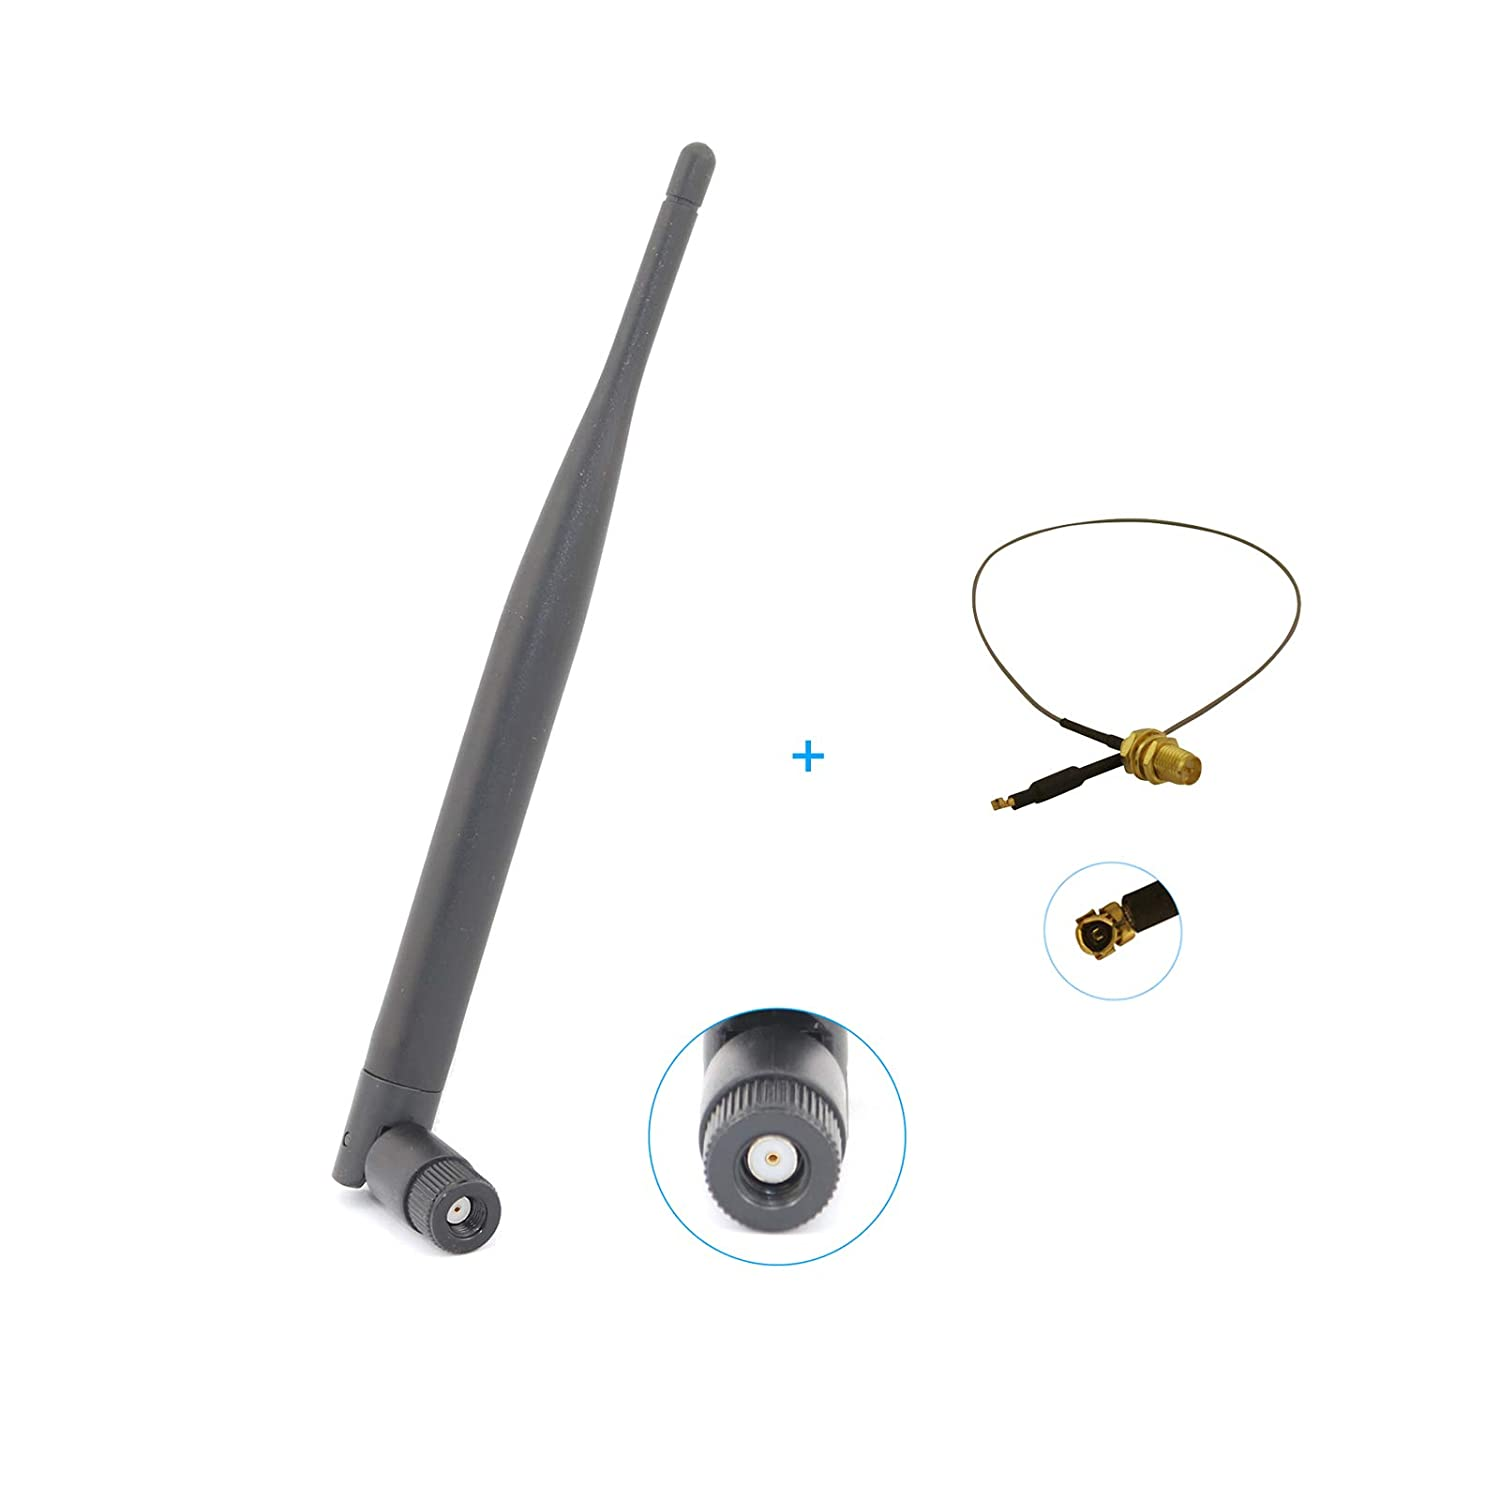 2 x 6dBi RP-SMA 2.4GHz 5GHz wireless Antenna 12in U.FL cable for E2500 EA2700